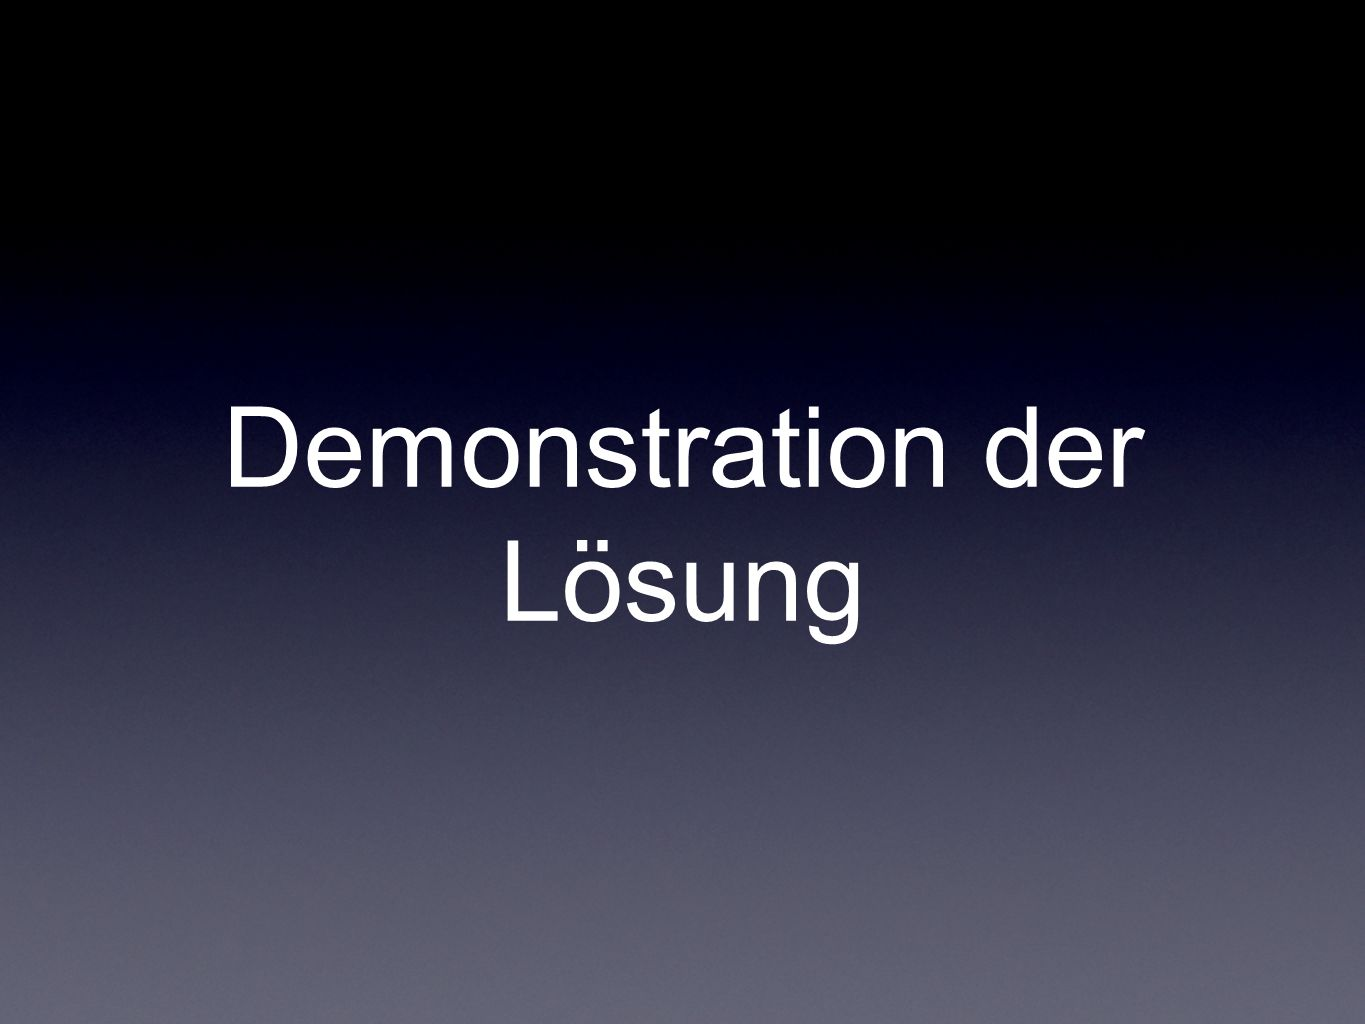 Demonstration der Lösung